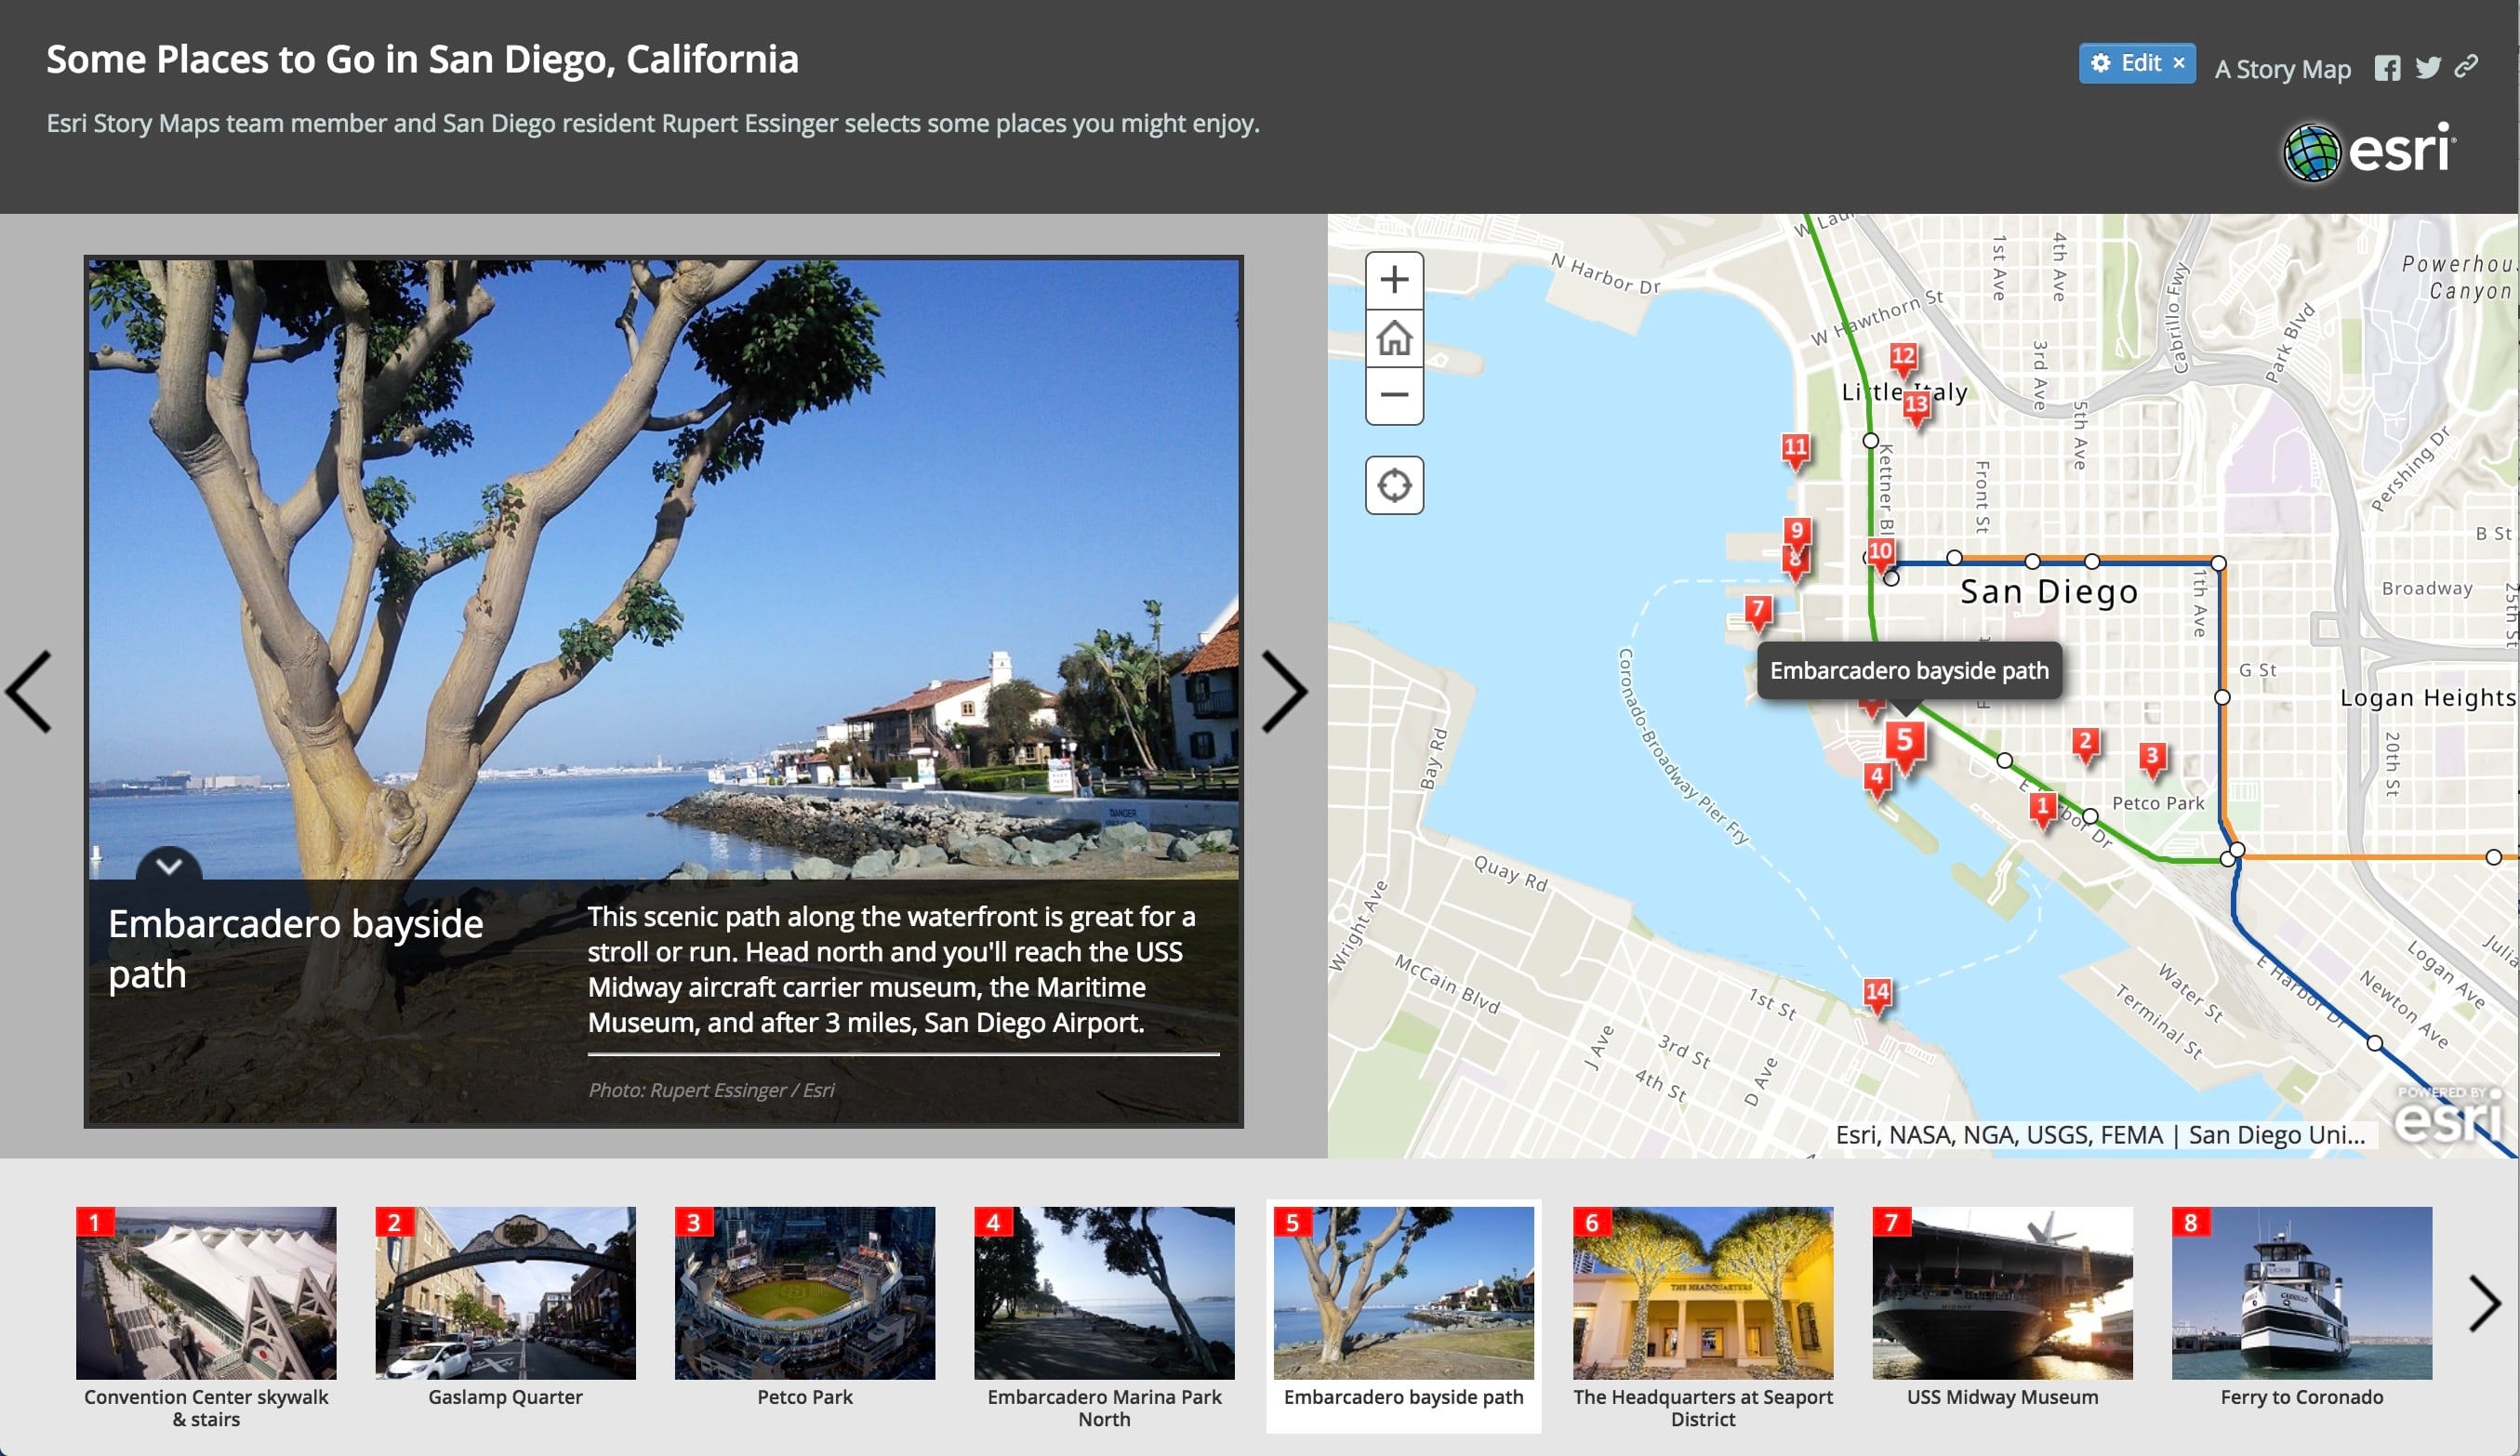 Some Places to Go in San Diego story map